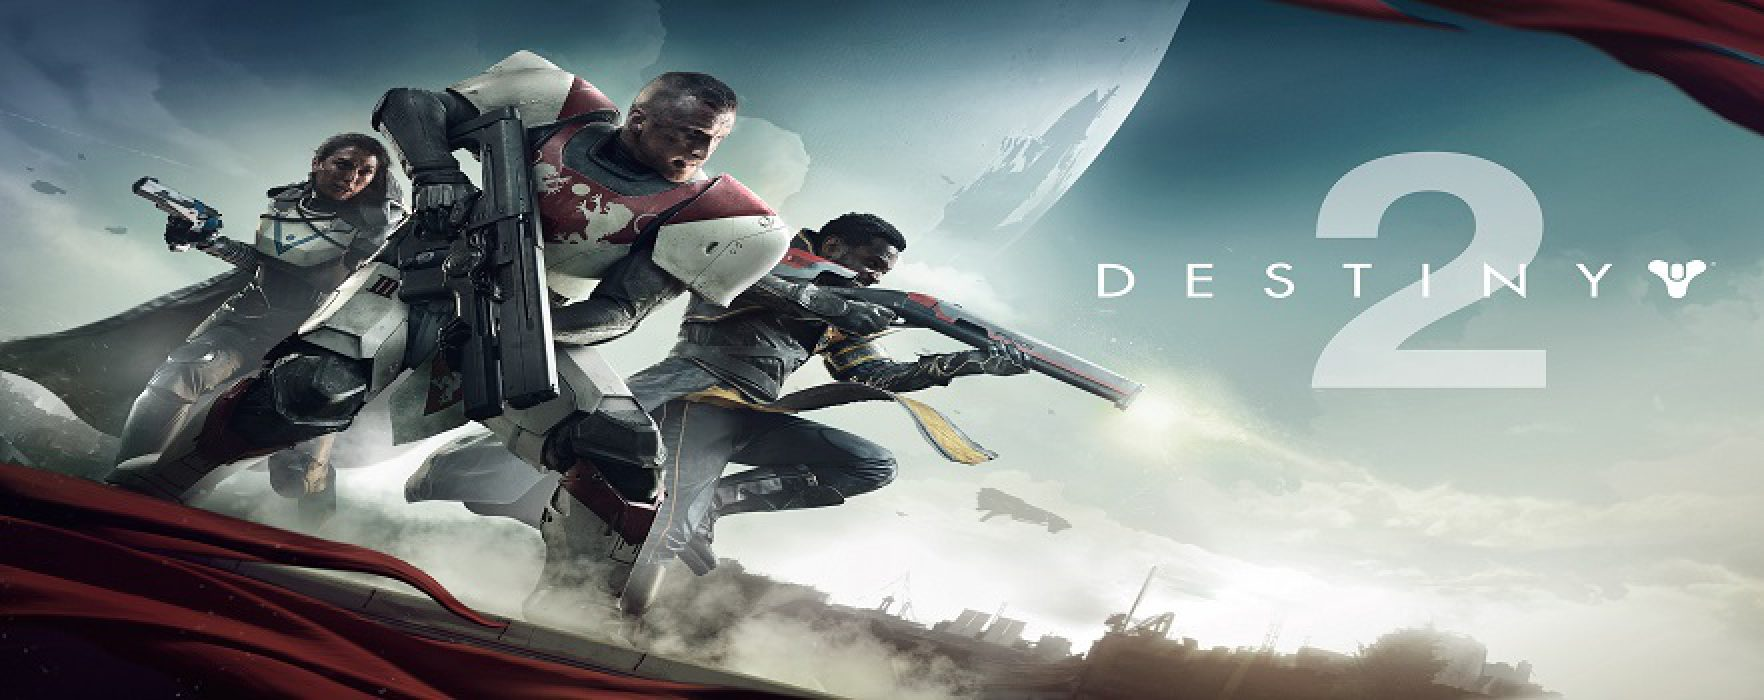 Bungie Announces Destiny 2 PC Release Date and More at E3